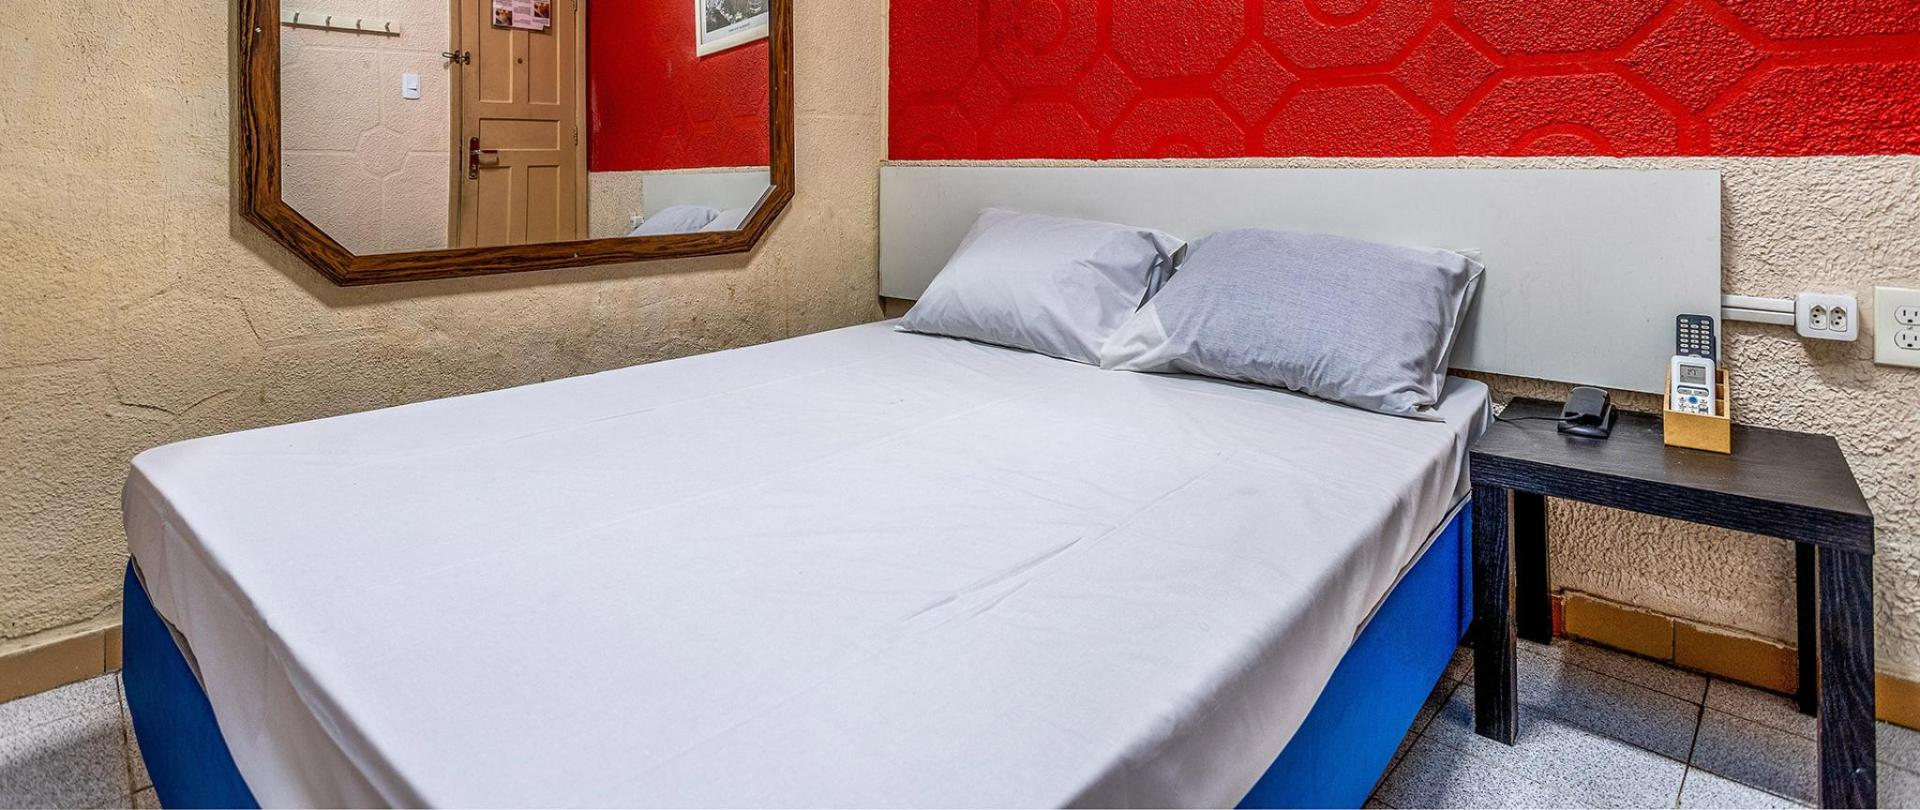 1920x810-one-bed-3.jpg